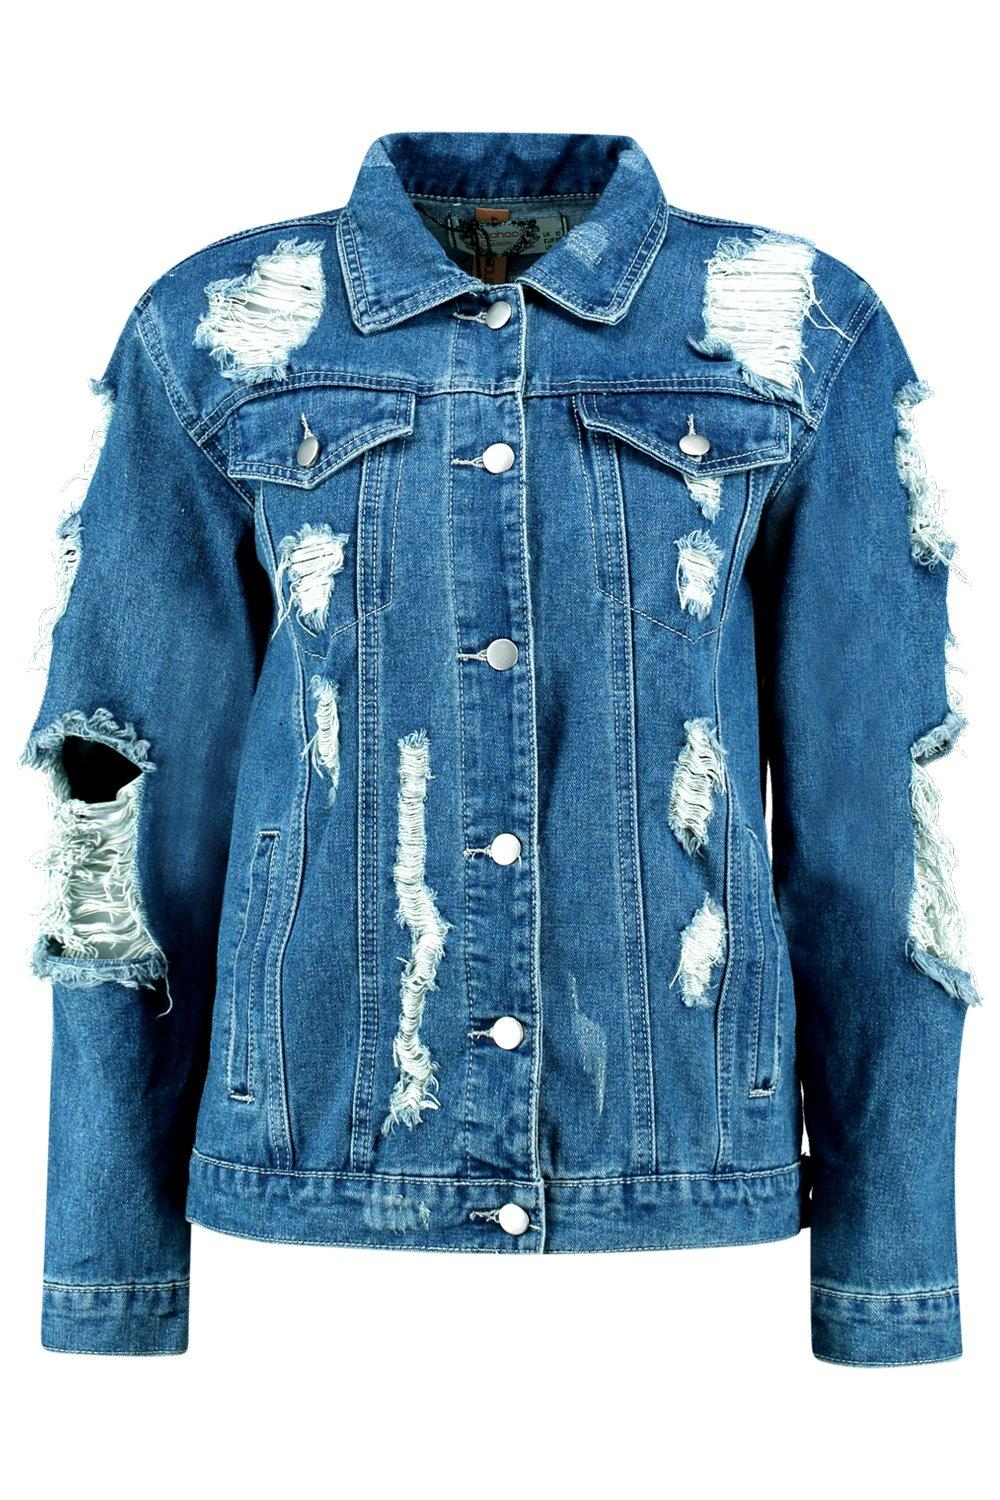 Denim jacket women uk